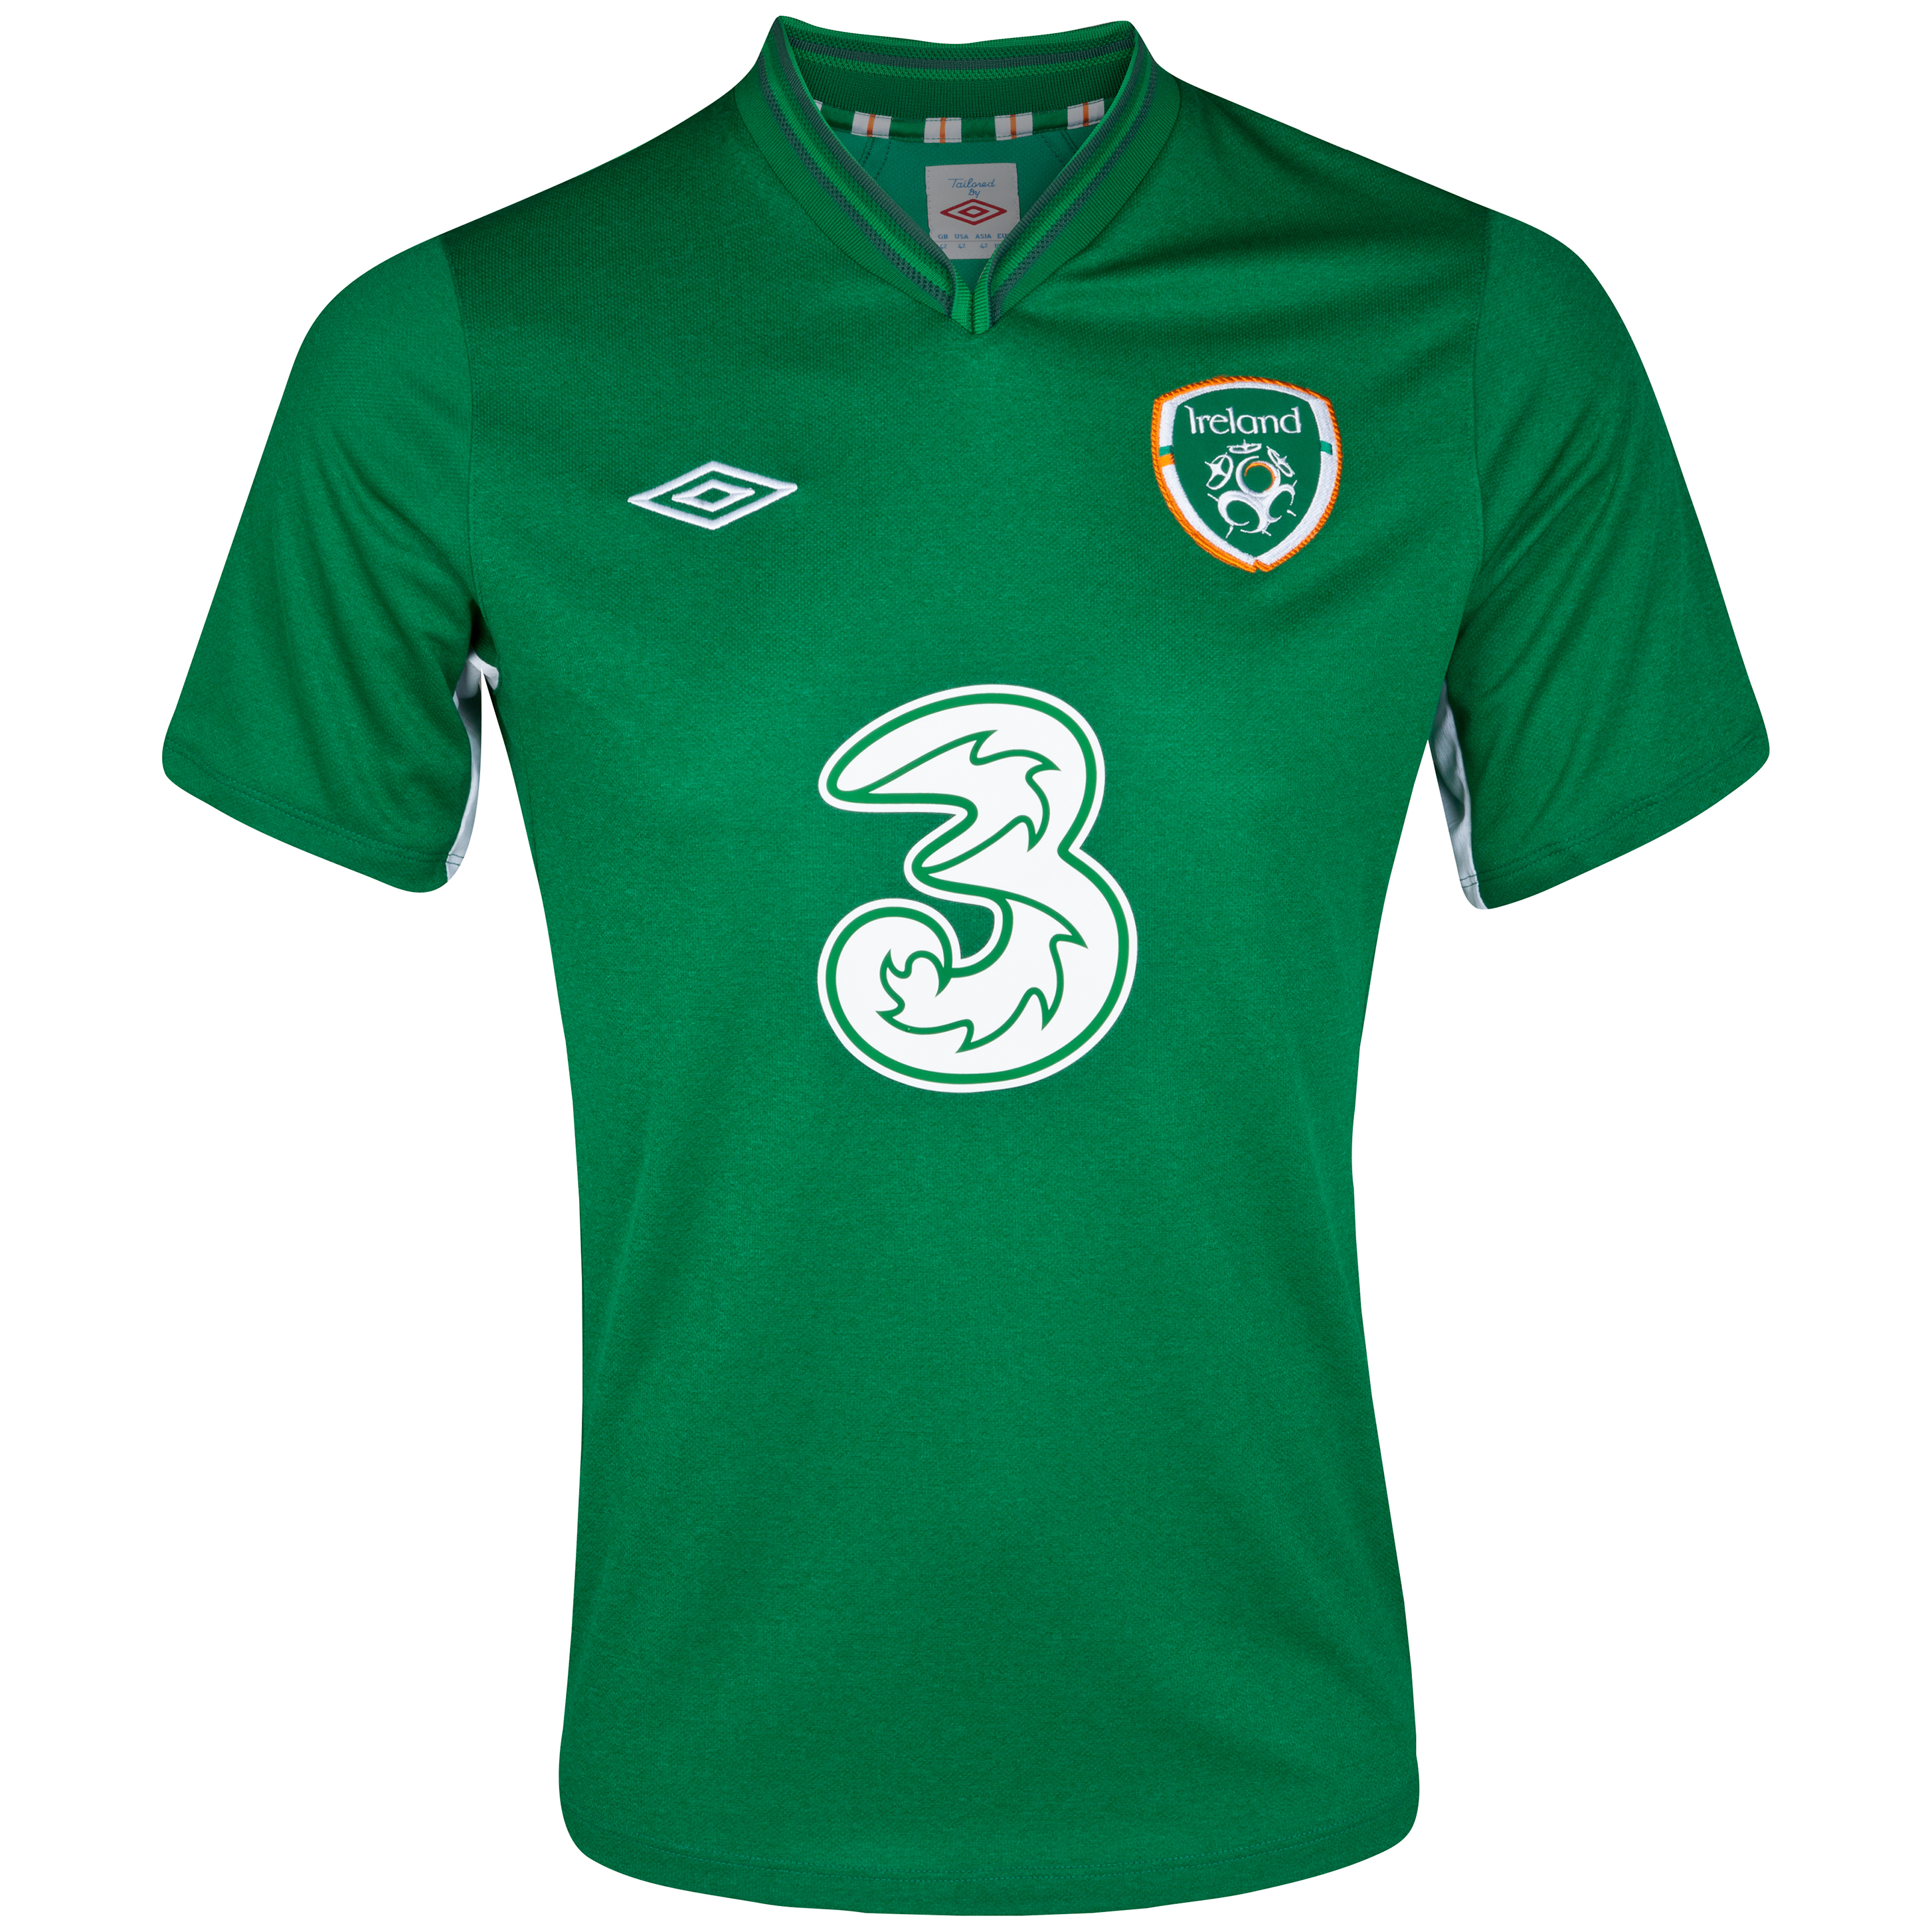 Republic Of Ireland Home Shirt 2012/13